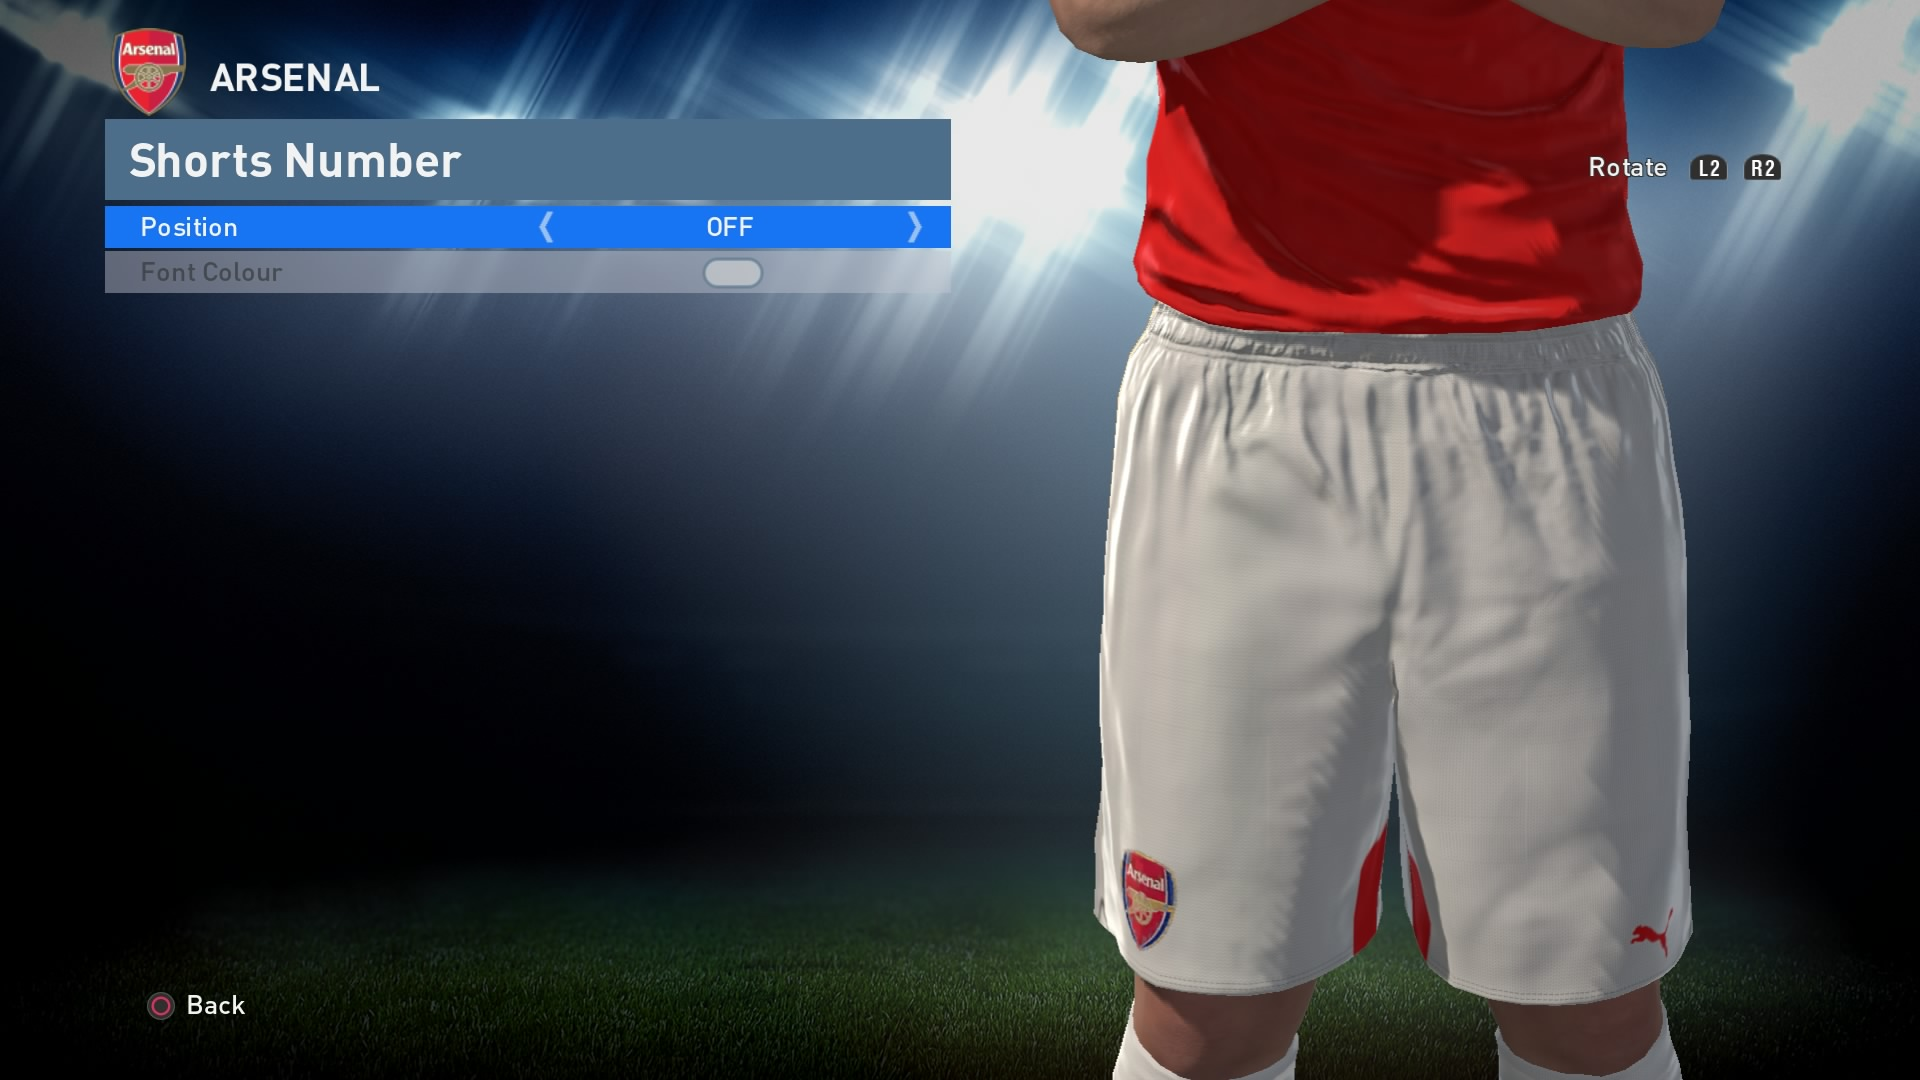 PES 2016 - Shorts Number